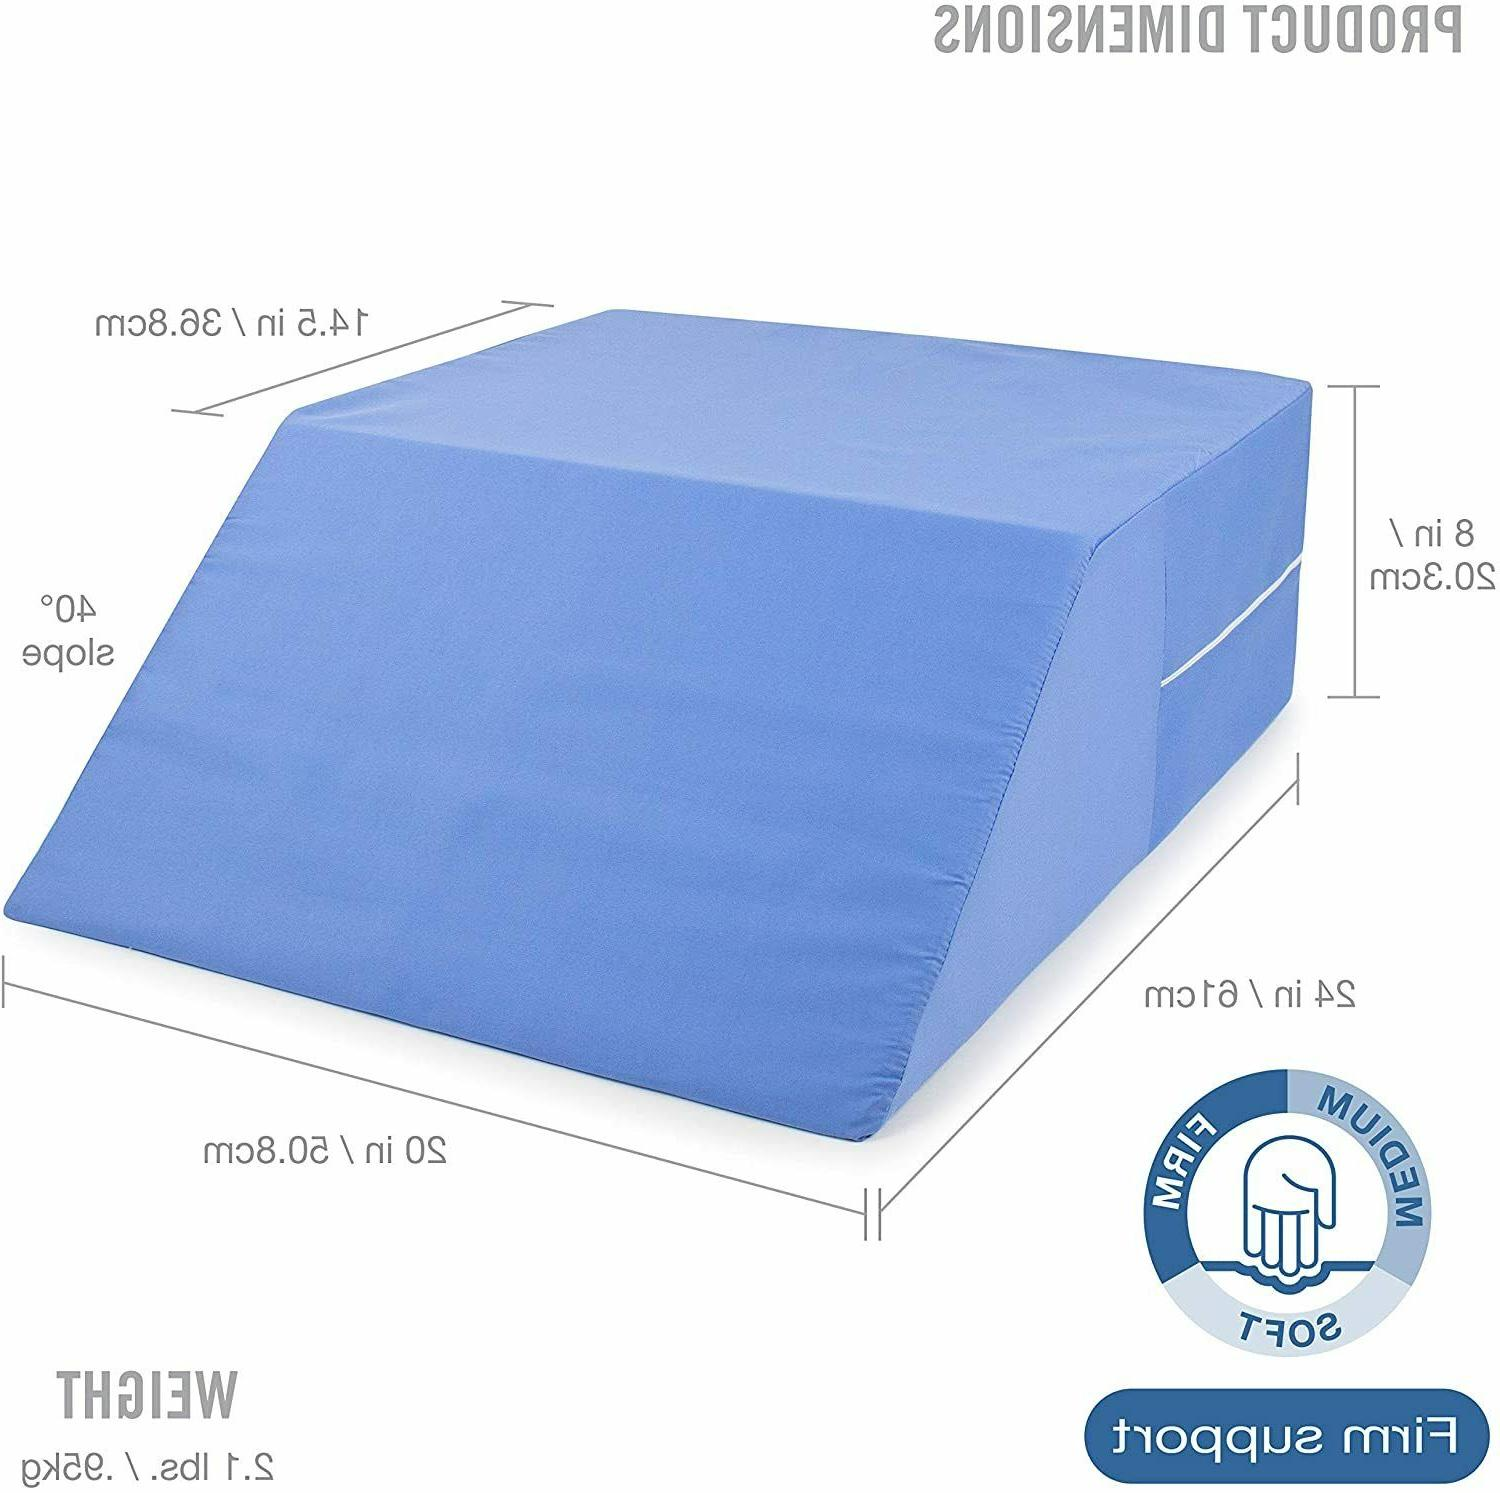 ortho bed wedge elevated leg pillow supportive